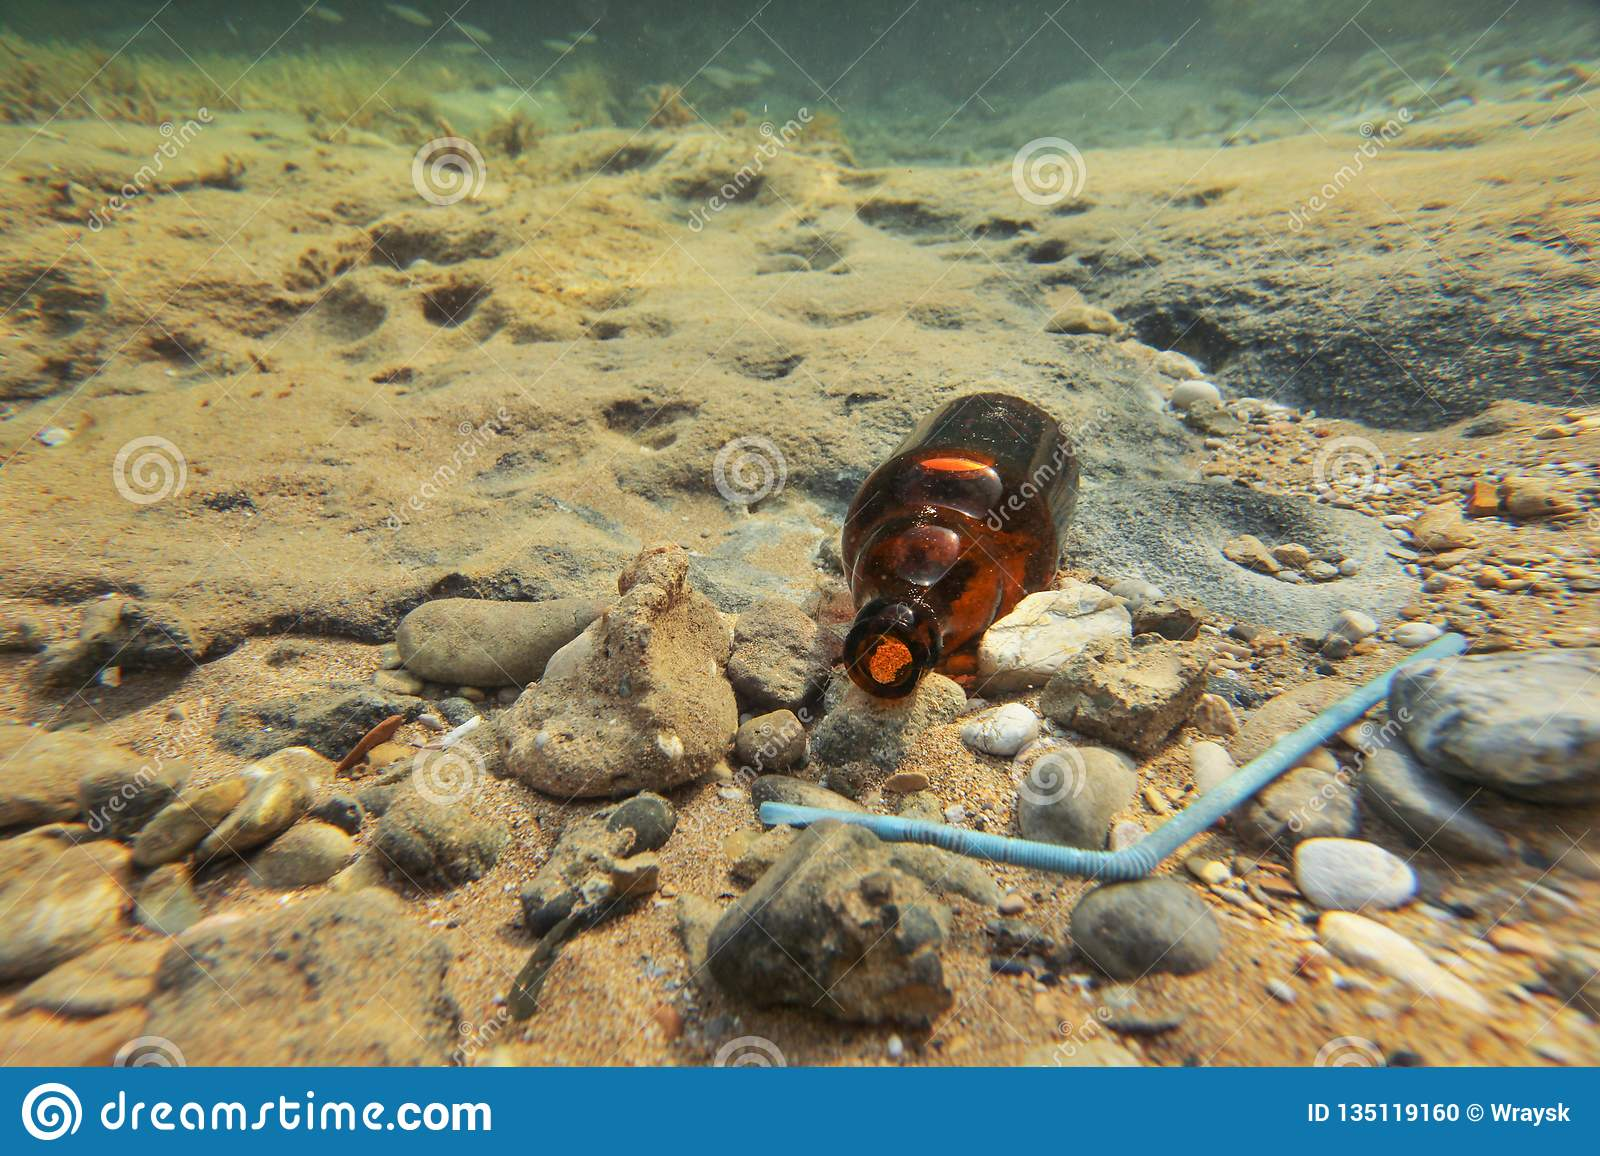 Underwater photo - small brown beer bottle and blue plastic straw on sea floor. Ocean littering concept